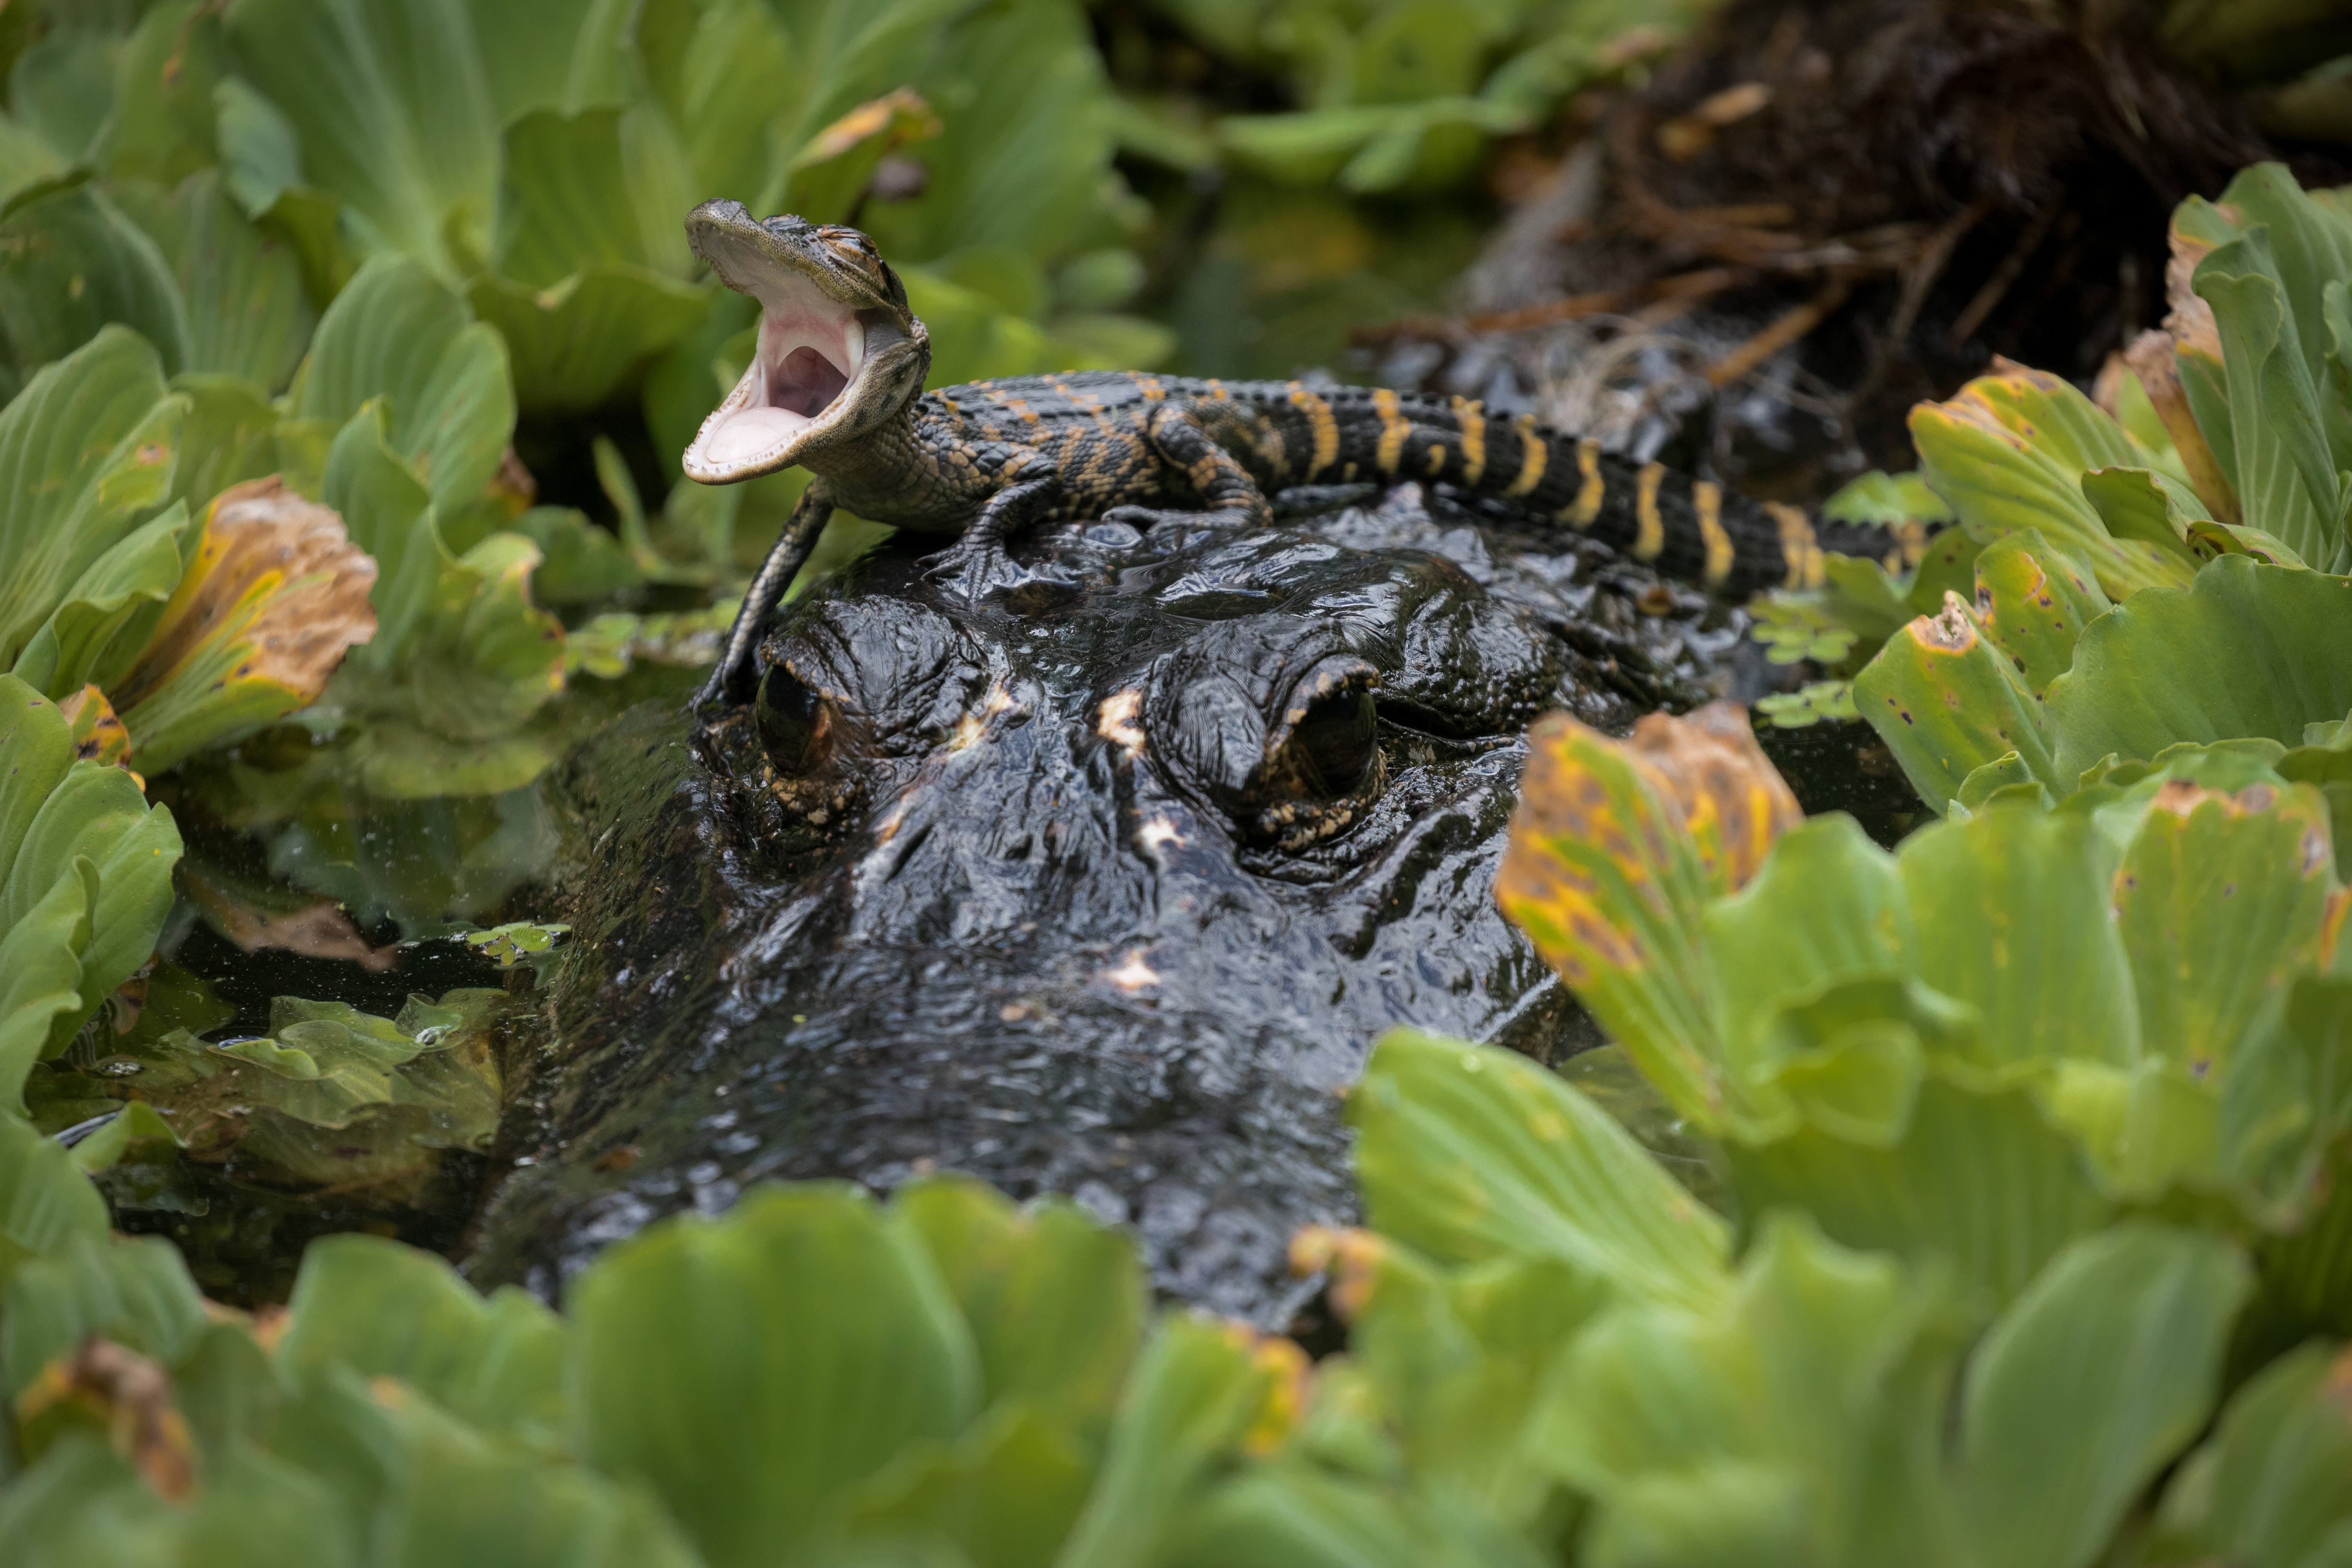 A first-year American alligator finds solid ground on the head of its mother in Corkscrew Swamp Sanctuary. Photograph by Mac Stone